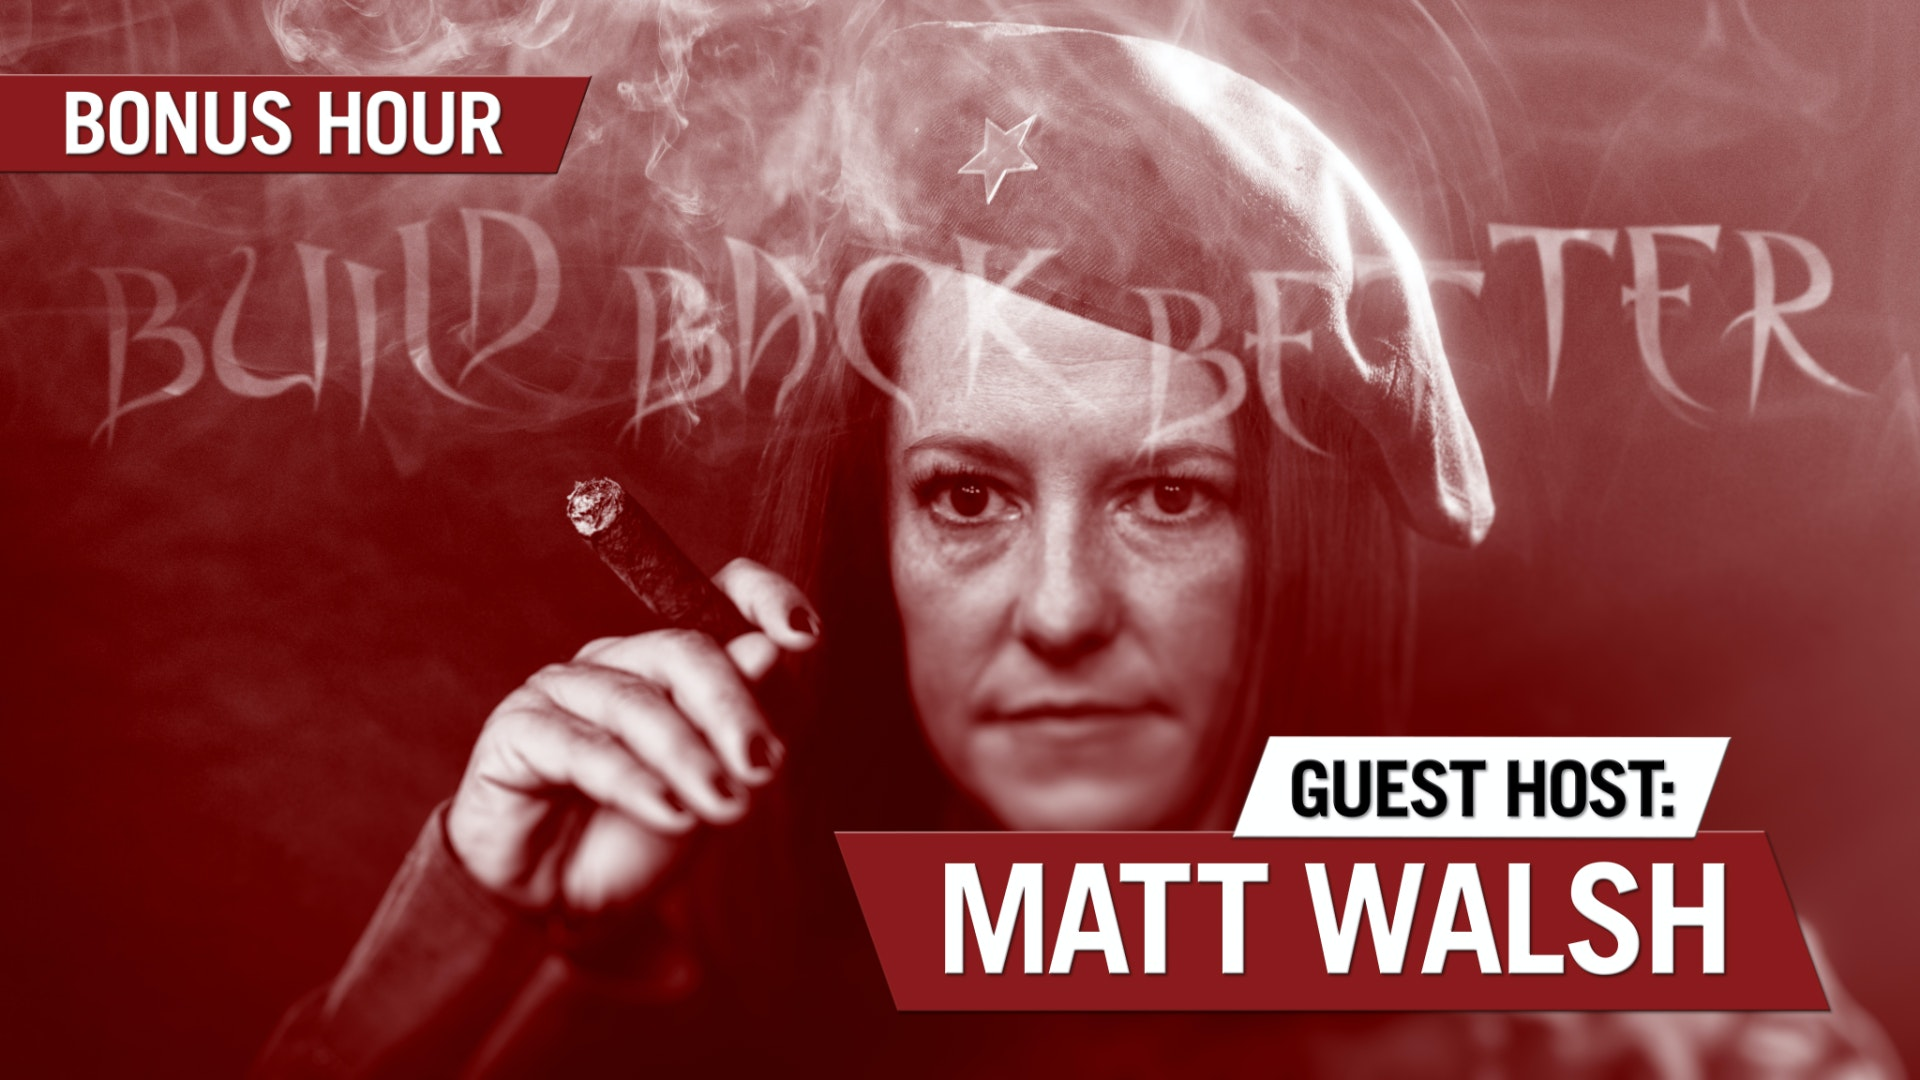 Ep. 1295 - To The Left, Conservative Authoritarians, Not Communist Dictators, Are The Problem [Bonus Hour with Guest Host Matt Walsh]